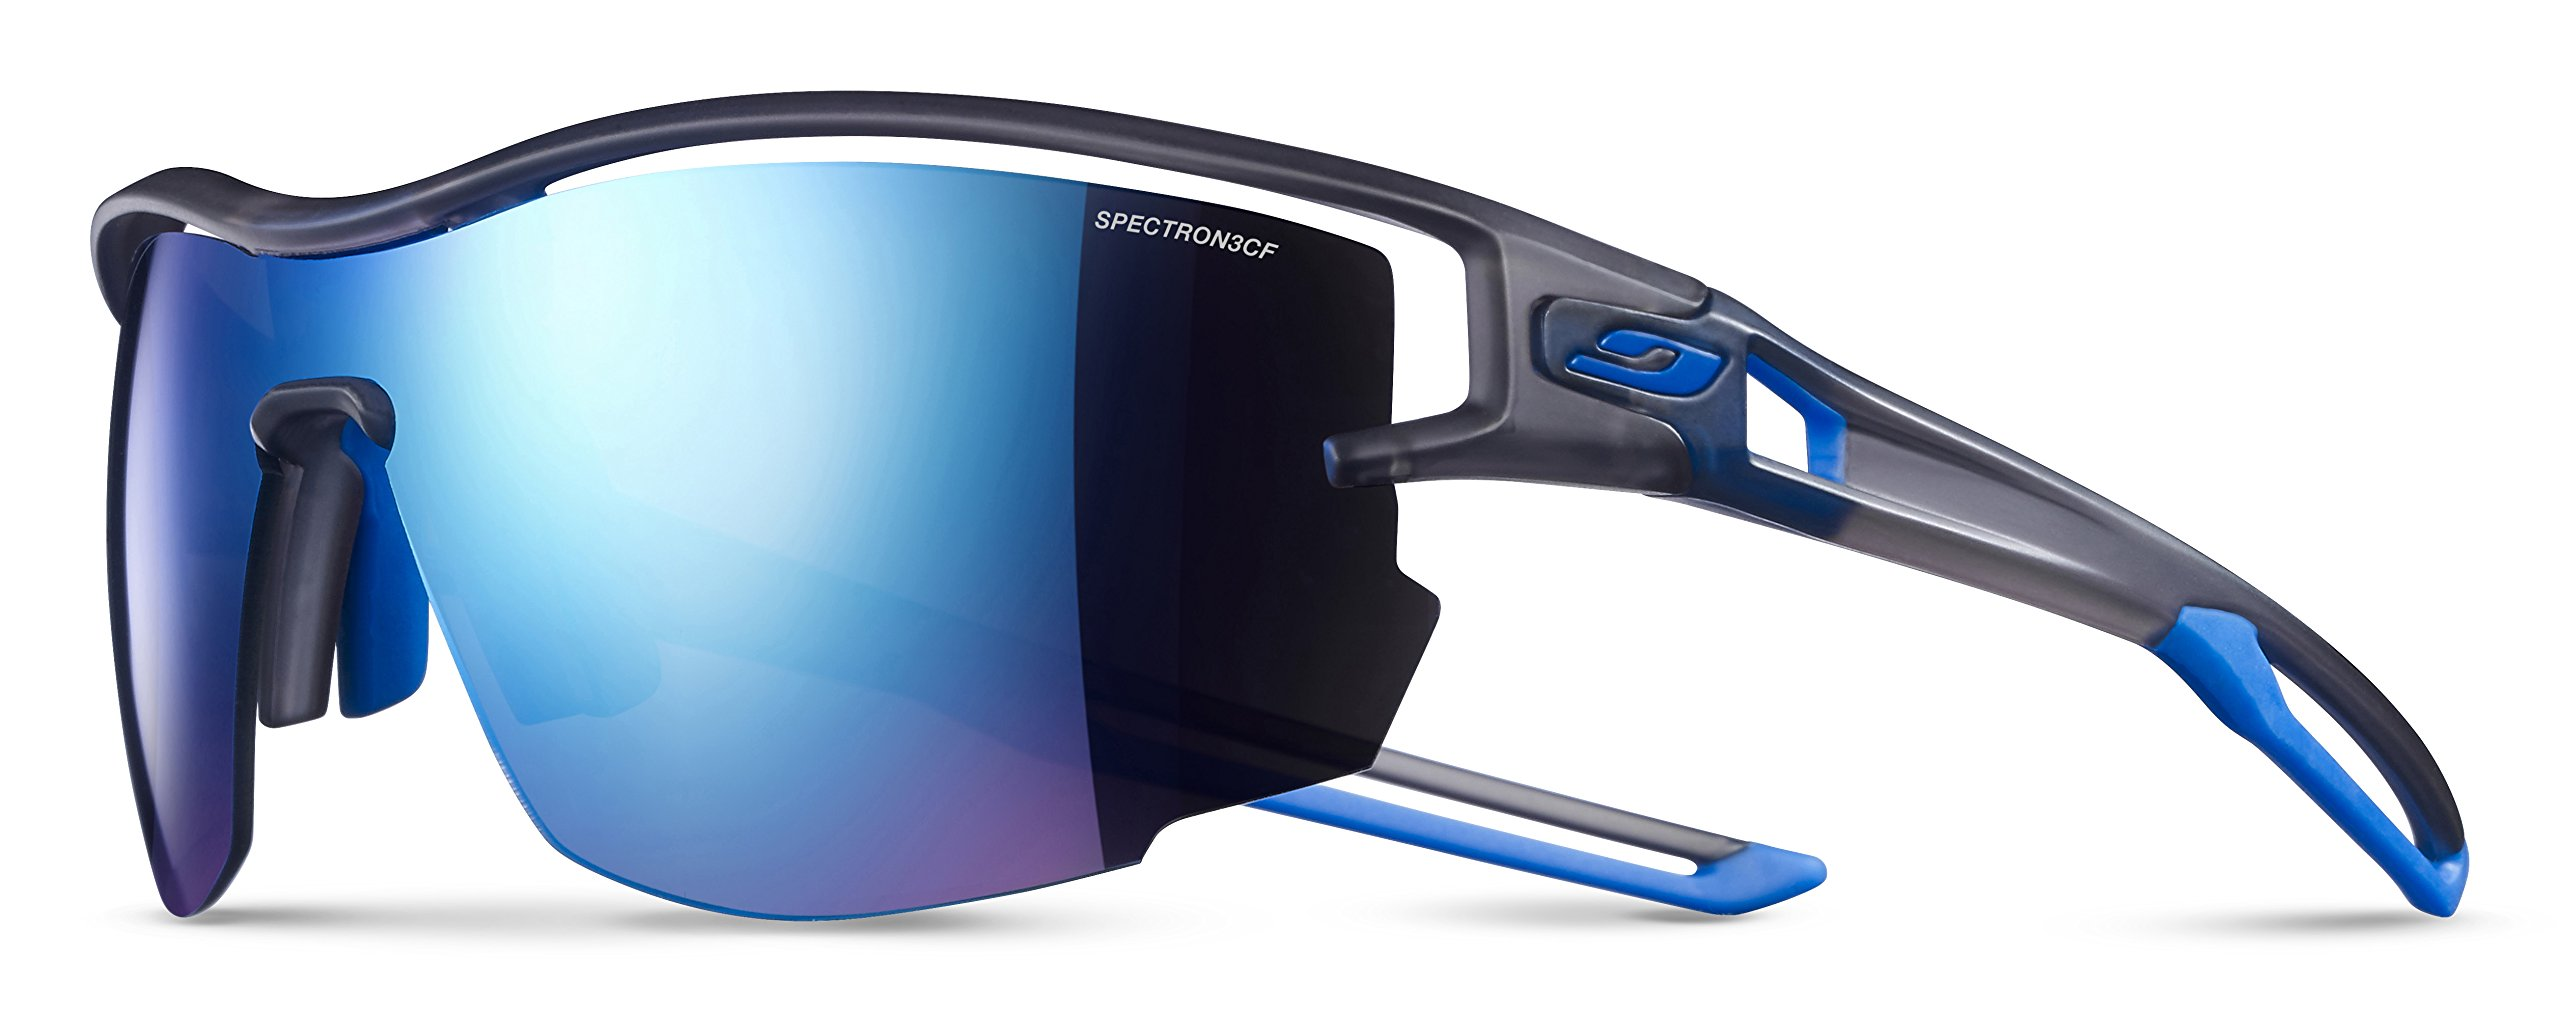 Julbo Aero Performance Sunglasses - Spectron 3CF - Translucent Gray/Blue